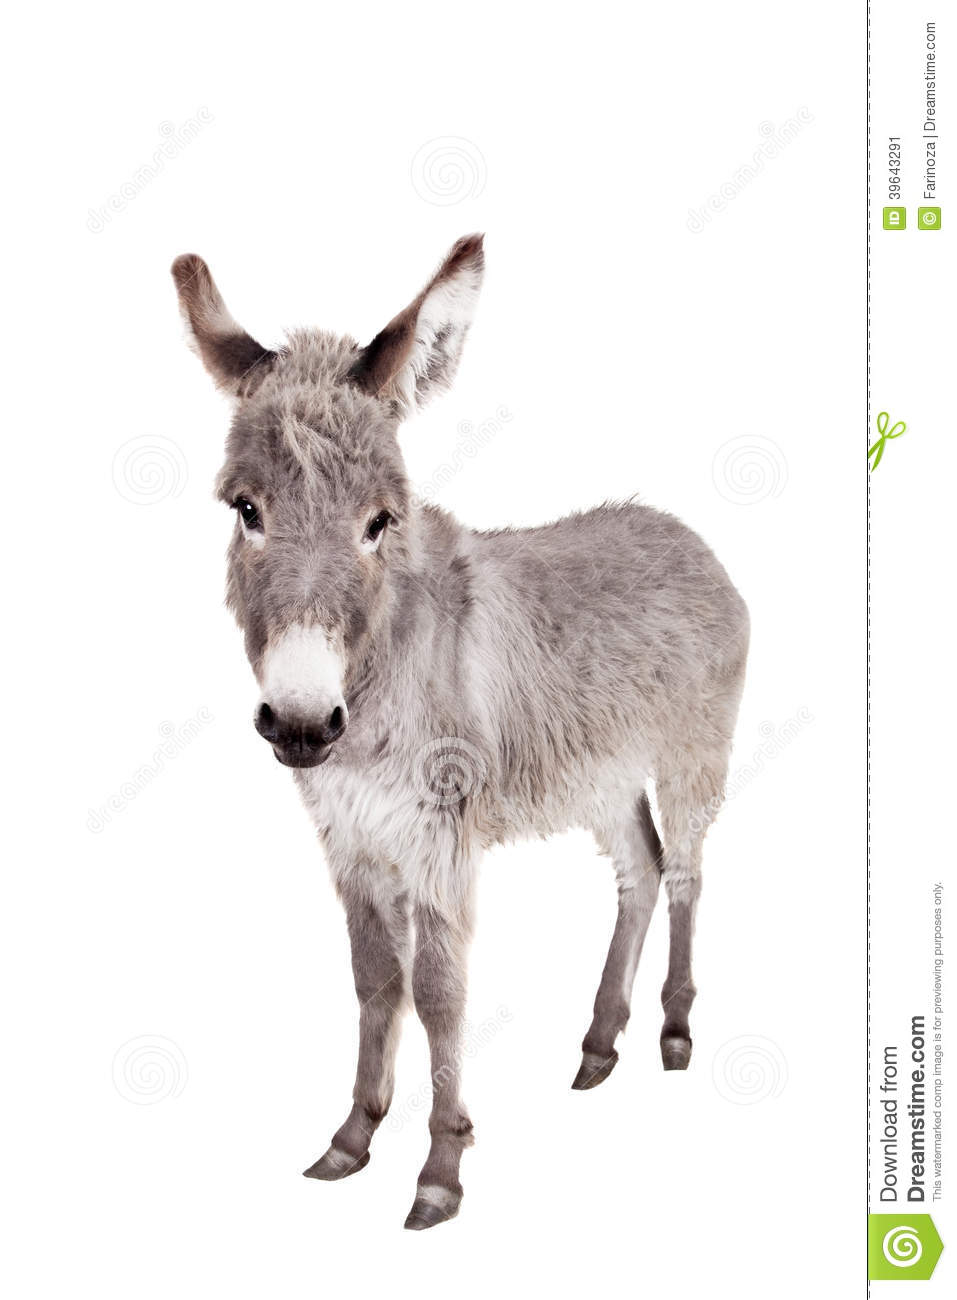 Pretty Donkey isolated on the white background.